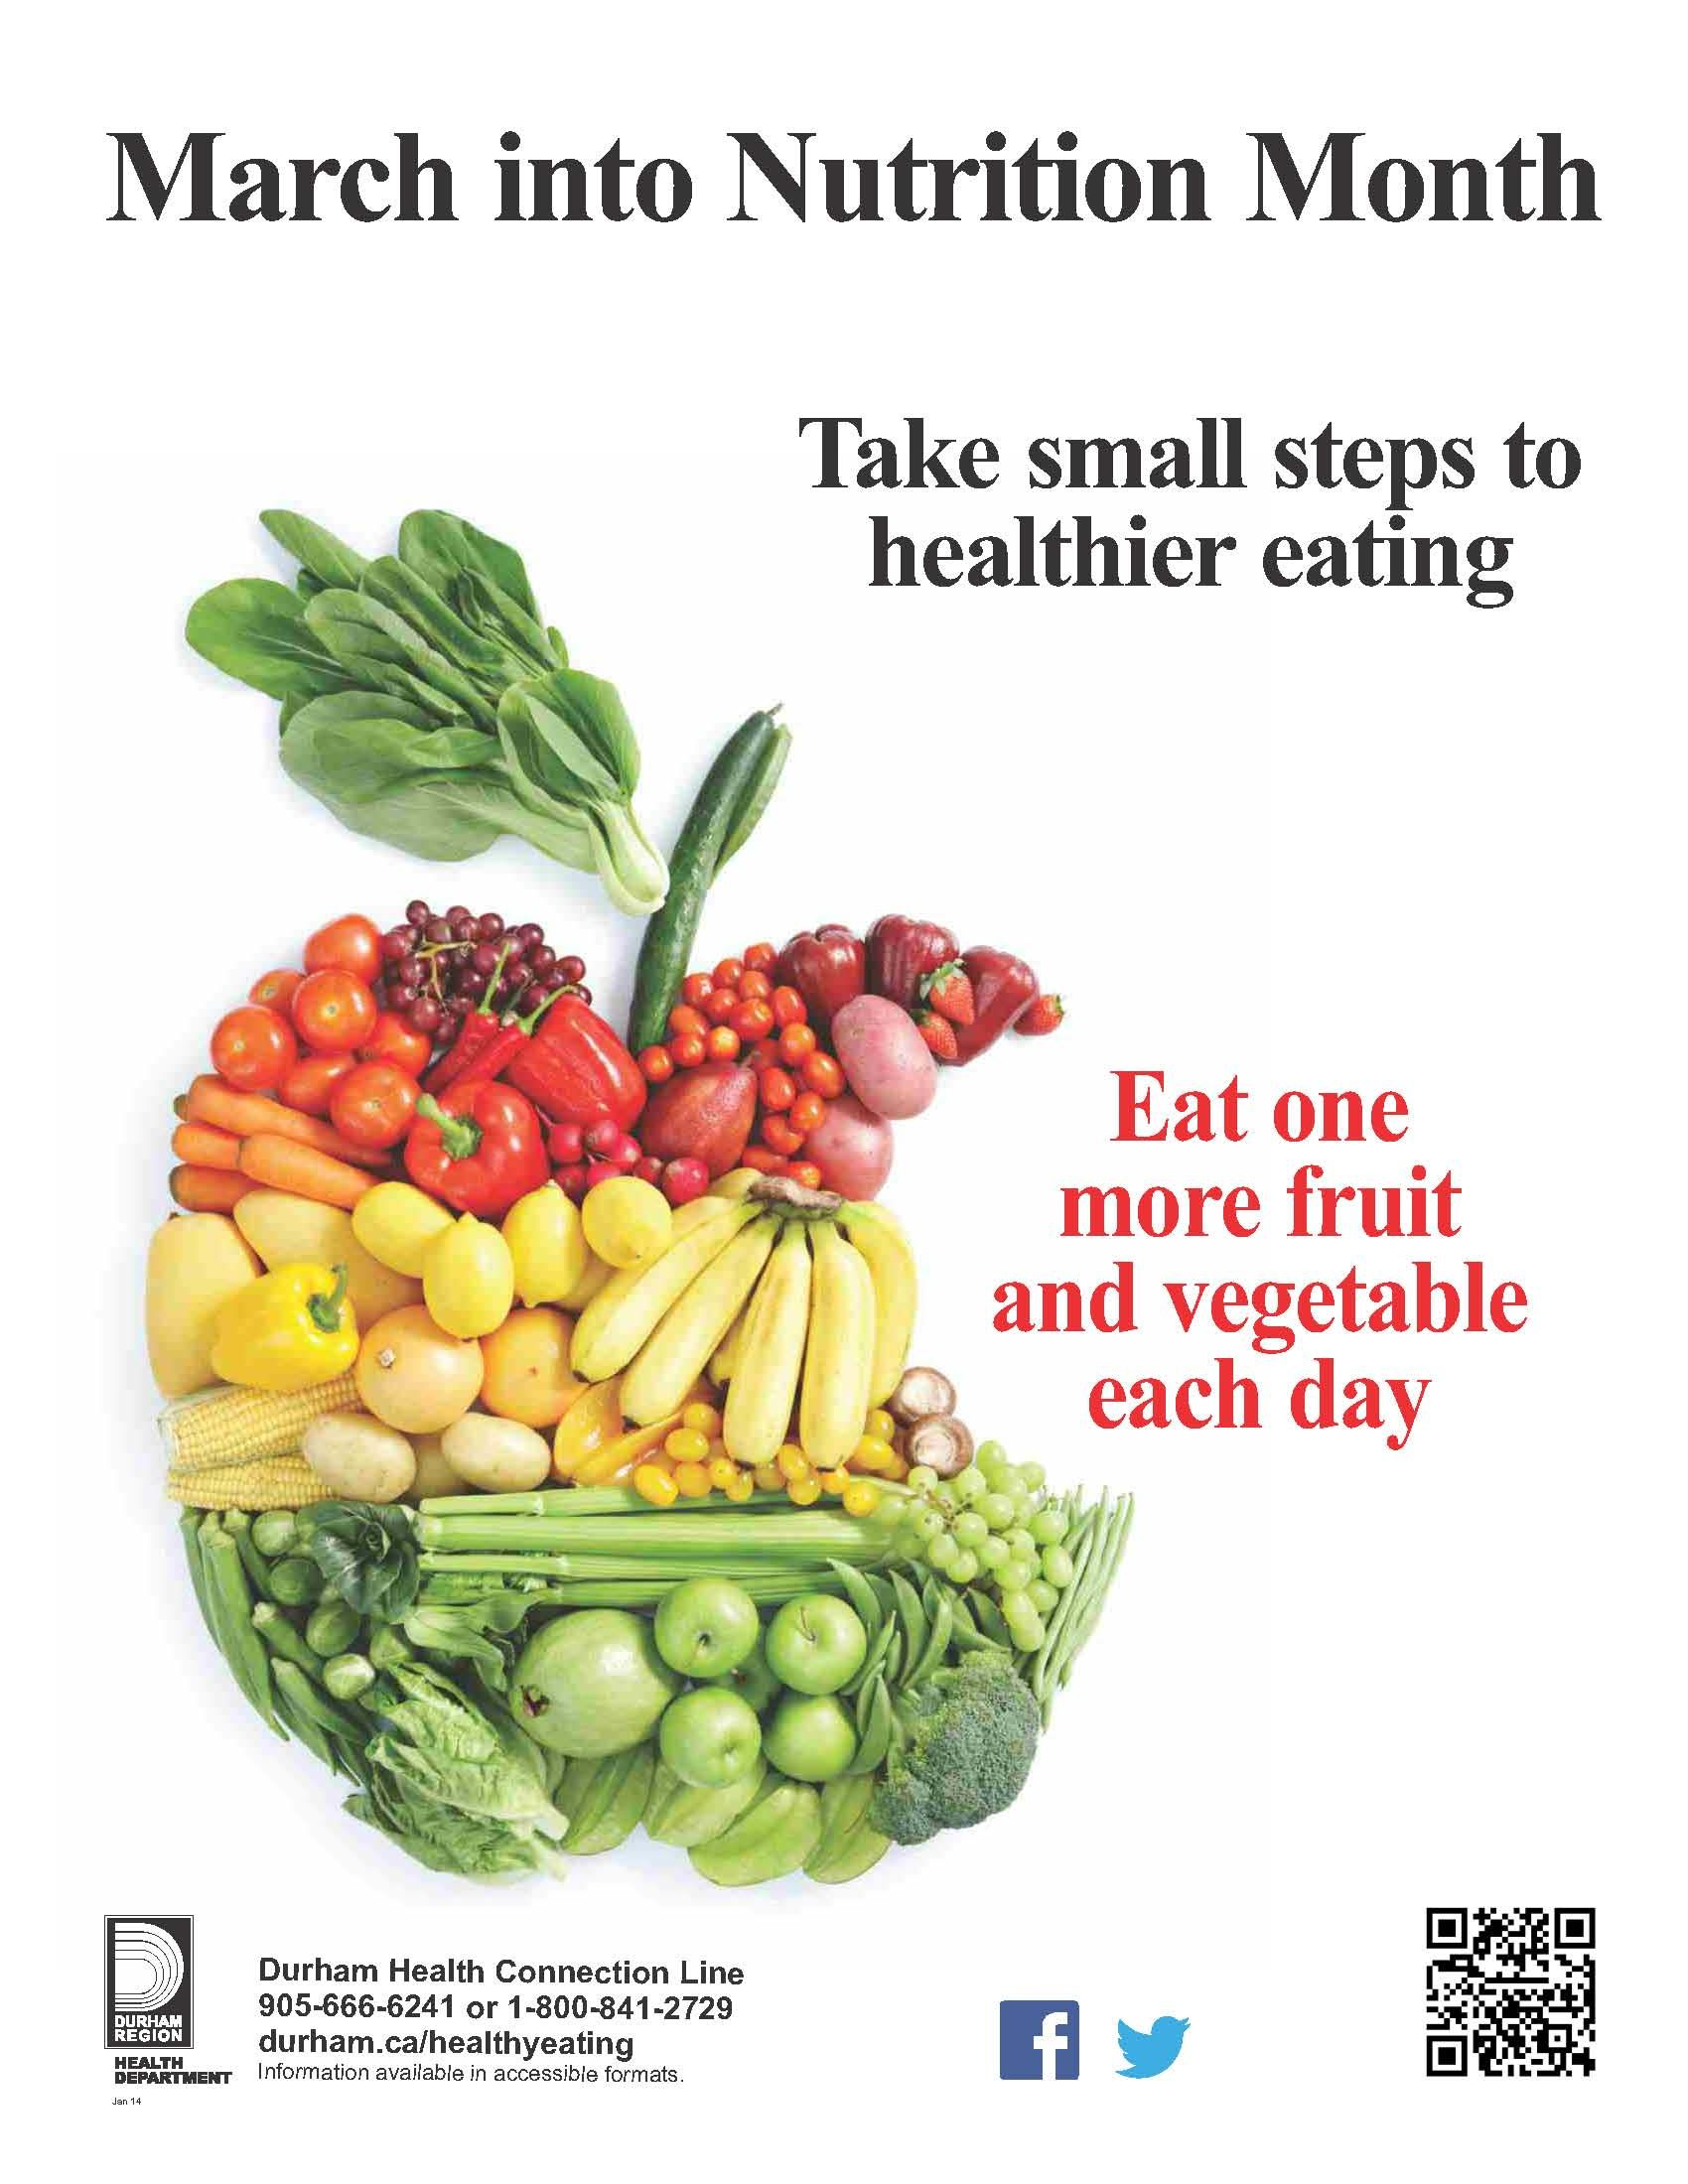 March Into Nutrition Month Take Small Steps To Healthier Eating Did You Know That Most People Are Not Eating Enough Nutrition Nutrition Month Healthy Eating